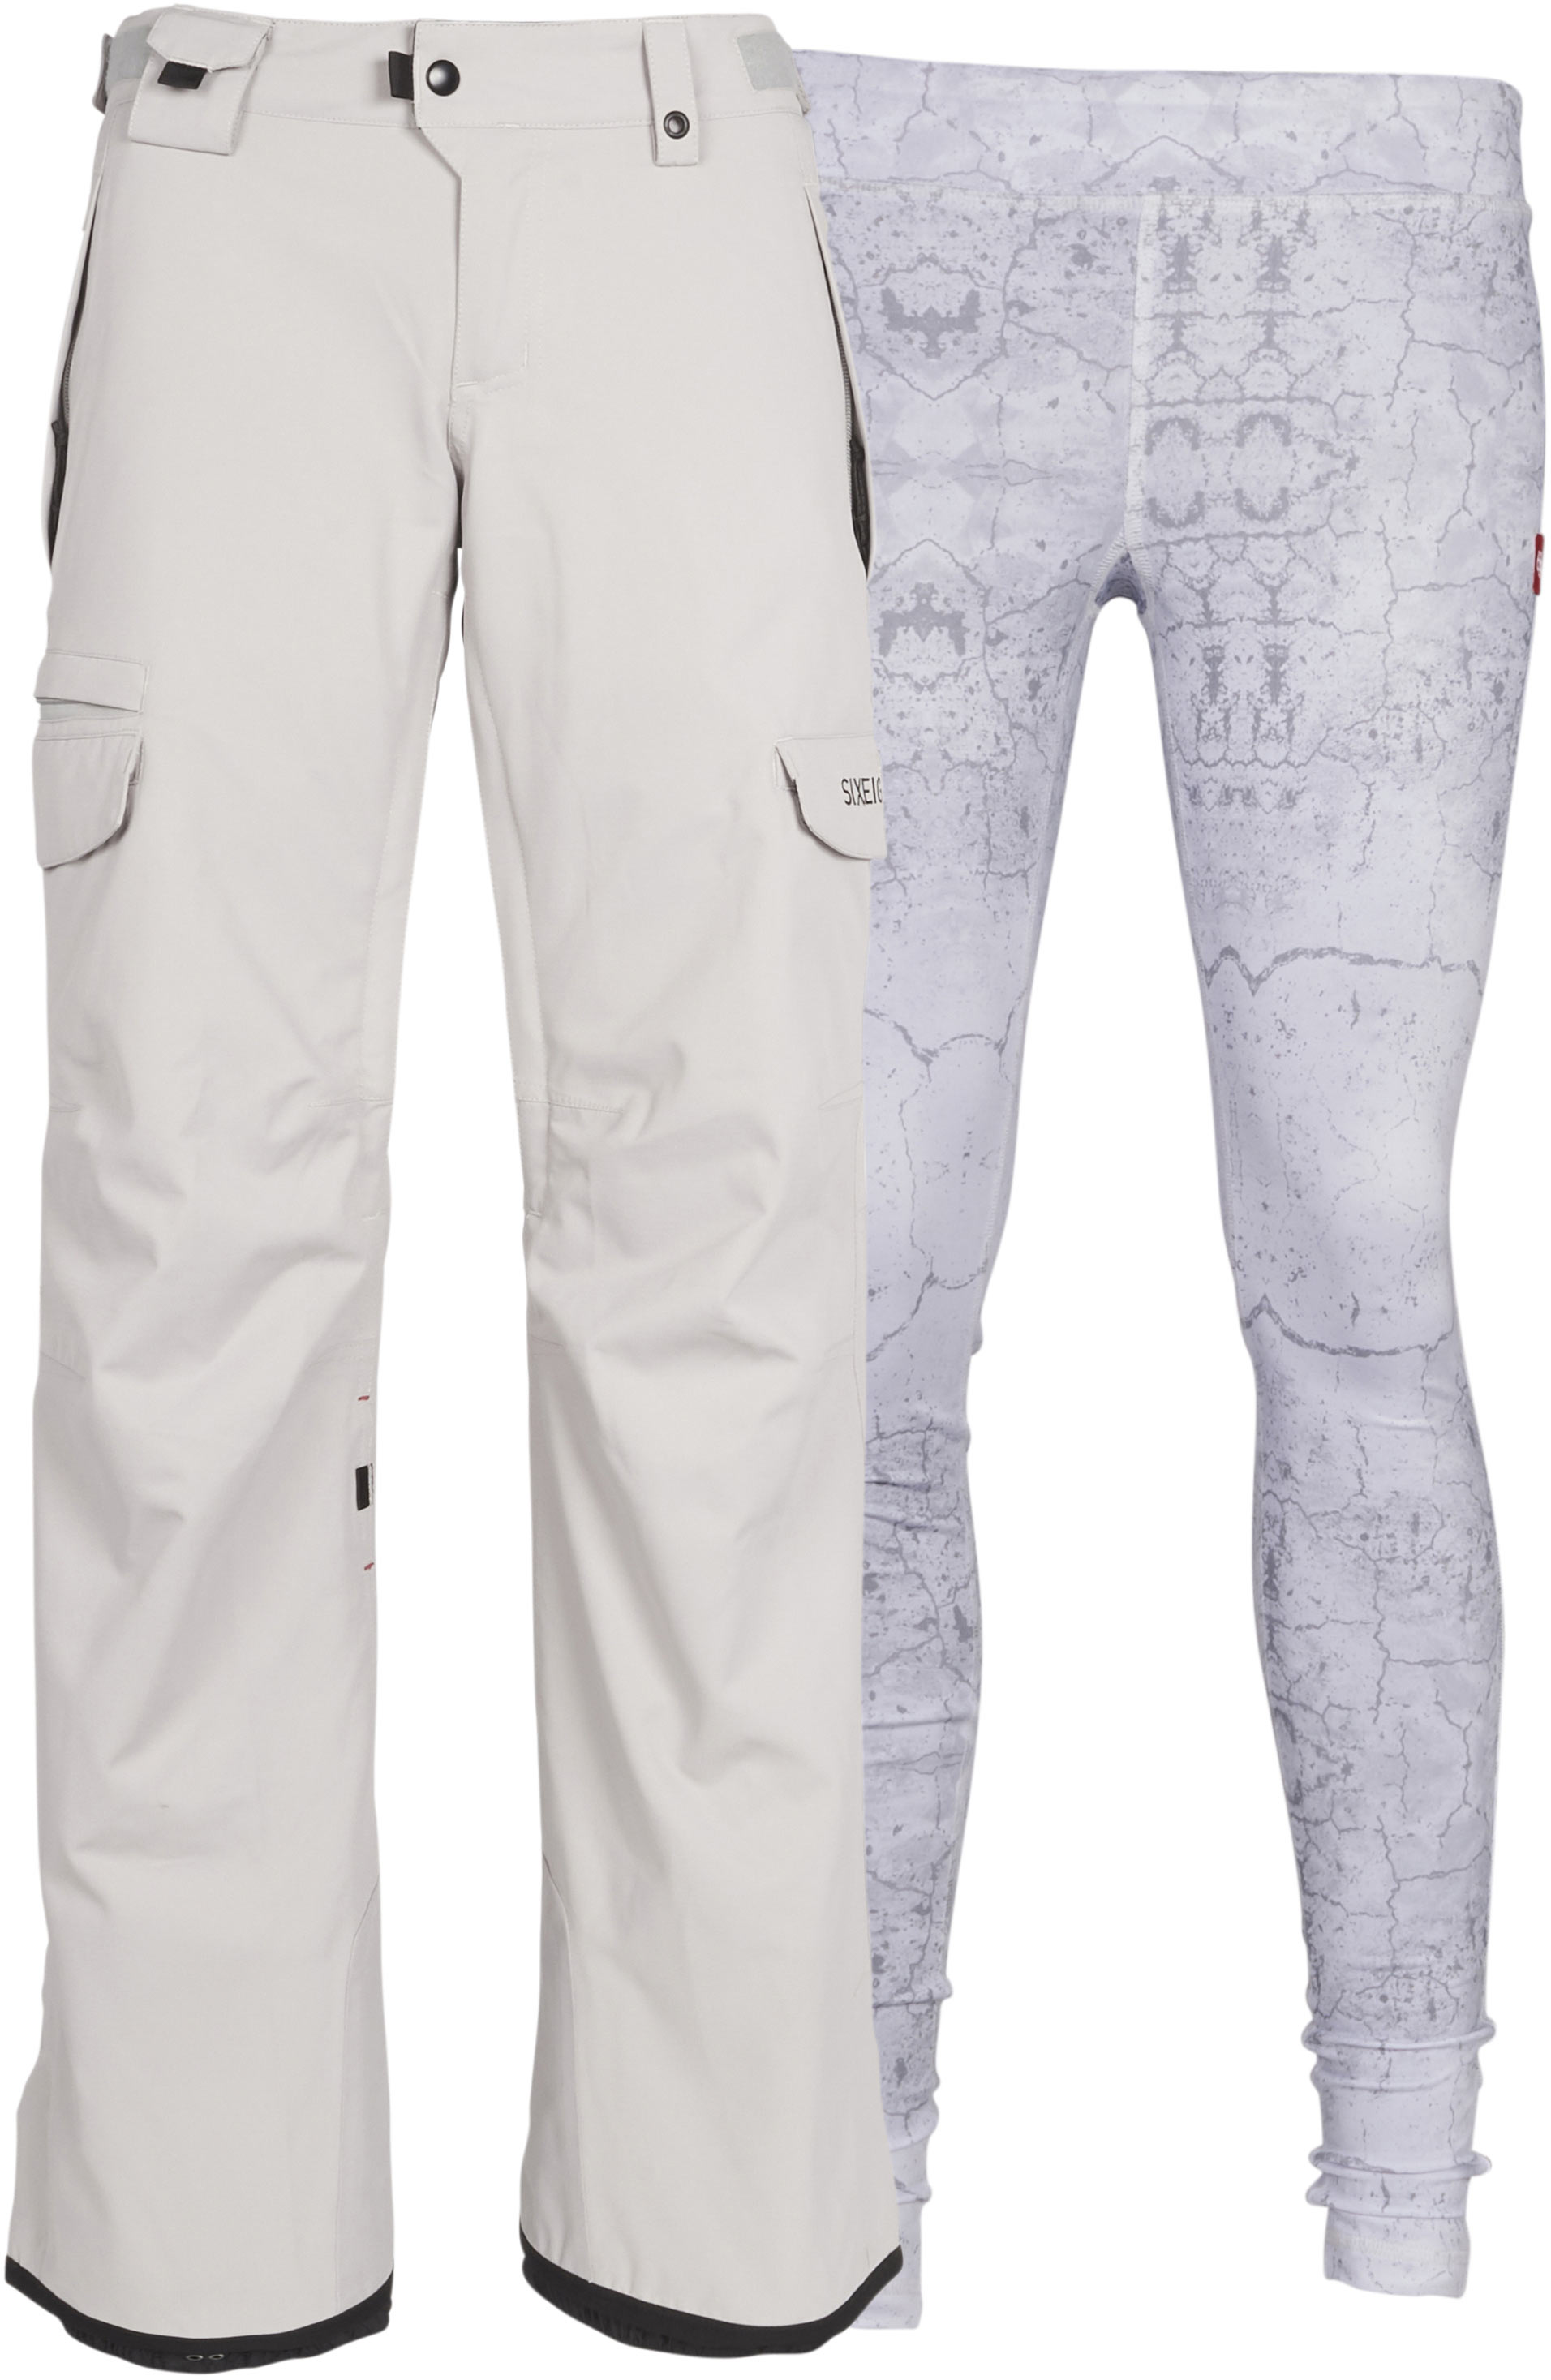 686 Womens Smarty 3 In 1 Cargo Snowboard Pant